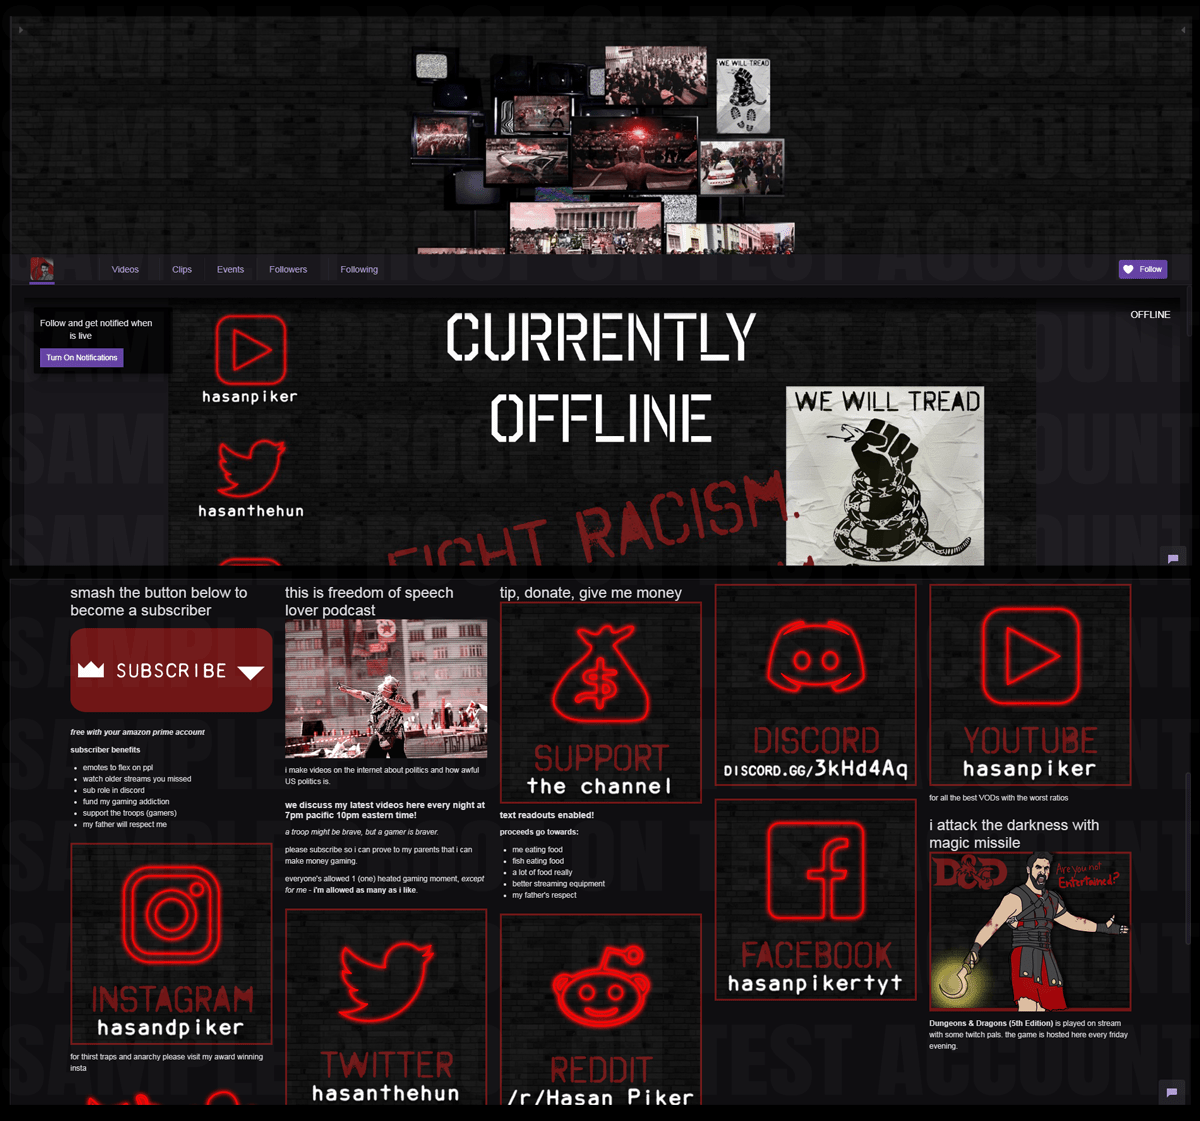 Preview image of Hasan Piker's Twitch.TV profile graphics as would be seen on the profile itself. The primary themes are a black brick background, a collage of television sets portraying civil distruption, and various logos appearing in red neon.